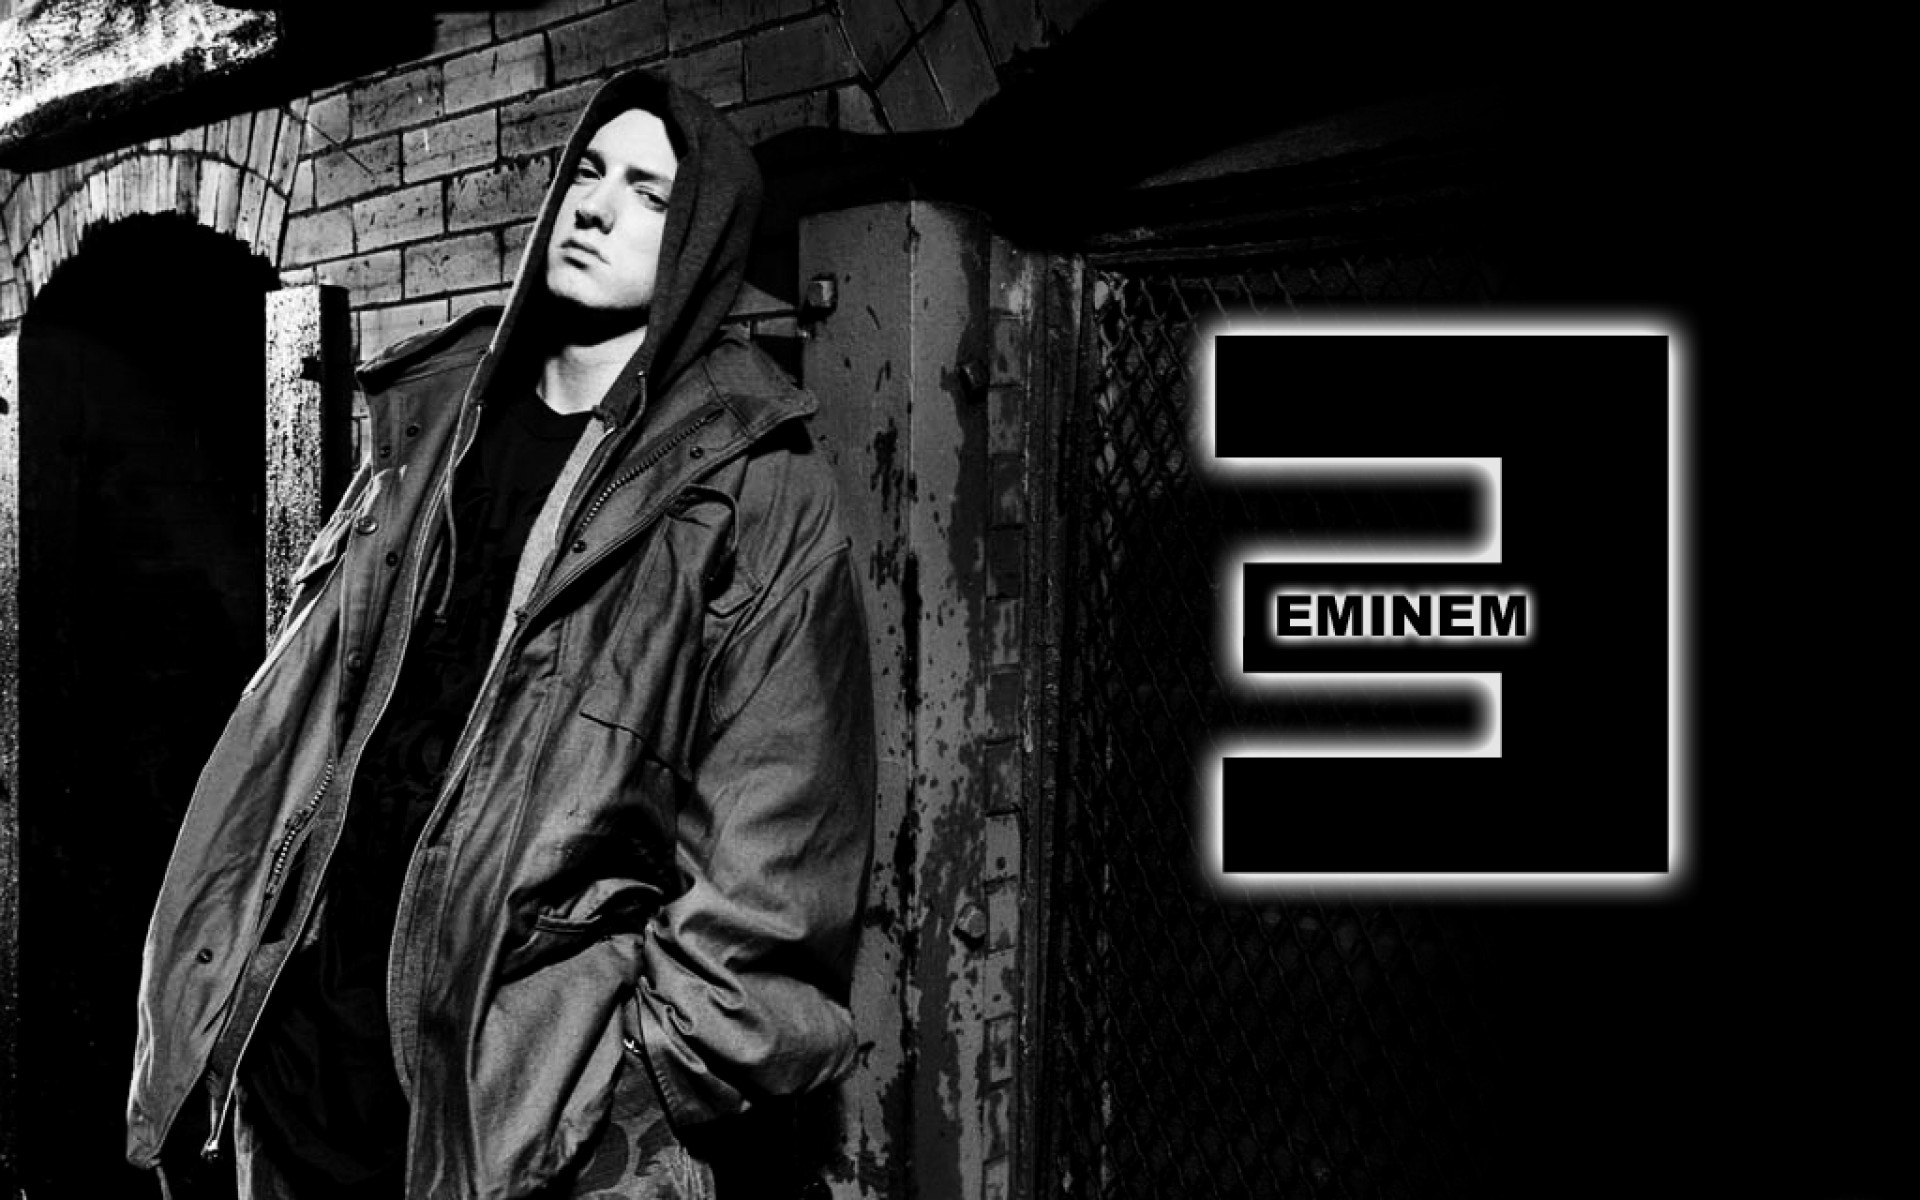 Eminem Wallpapers HD A35 - HD Desktop Wallpapers | 4k HD